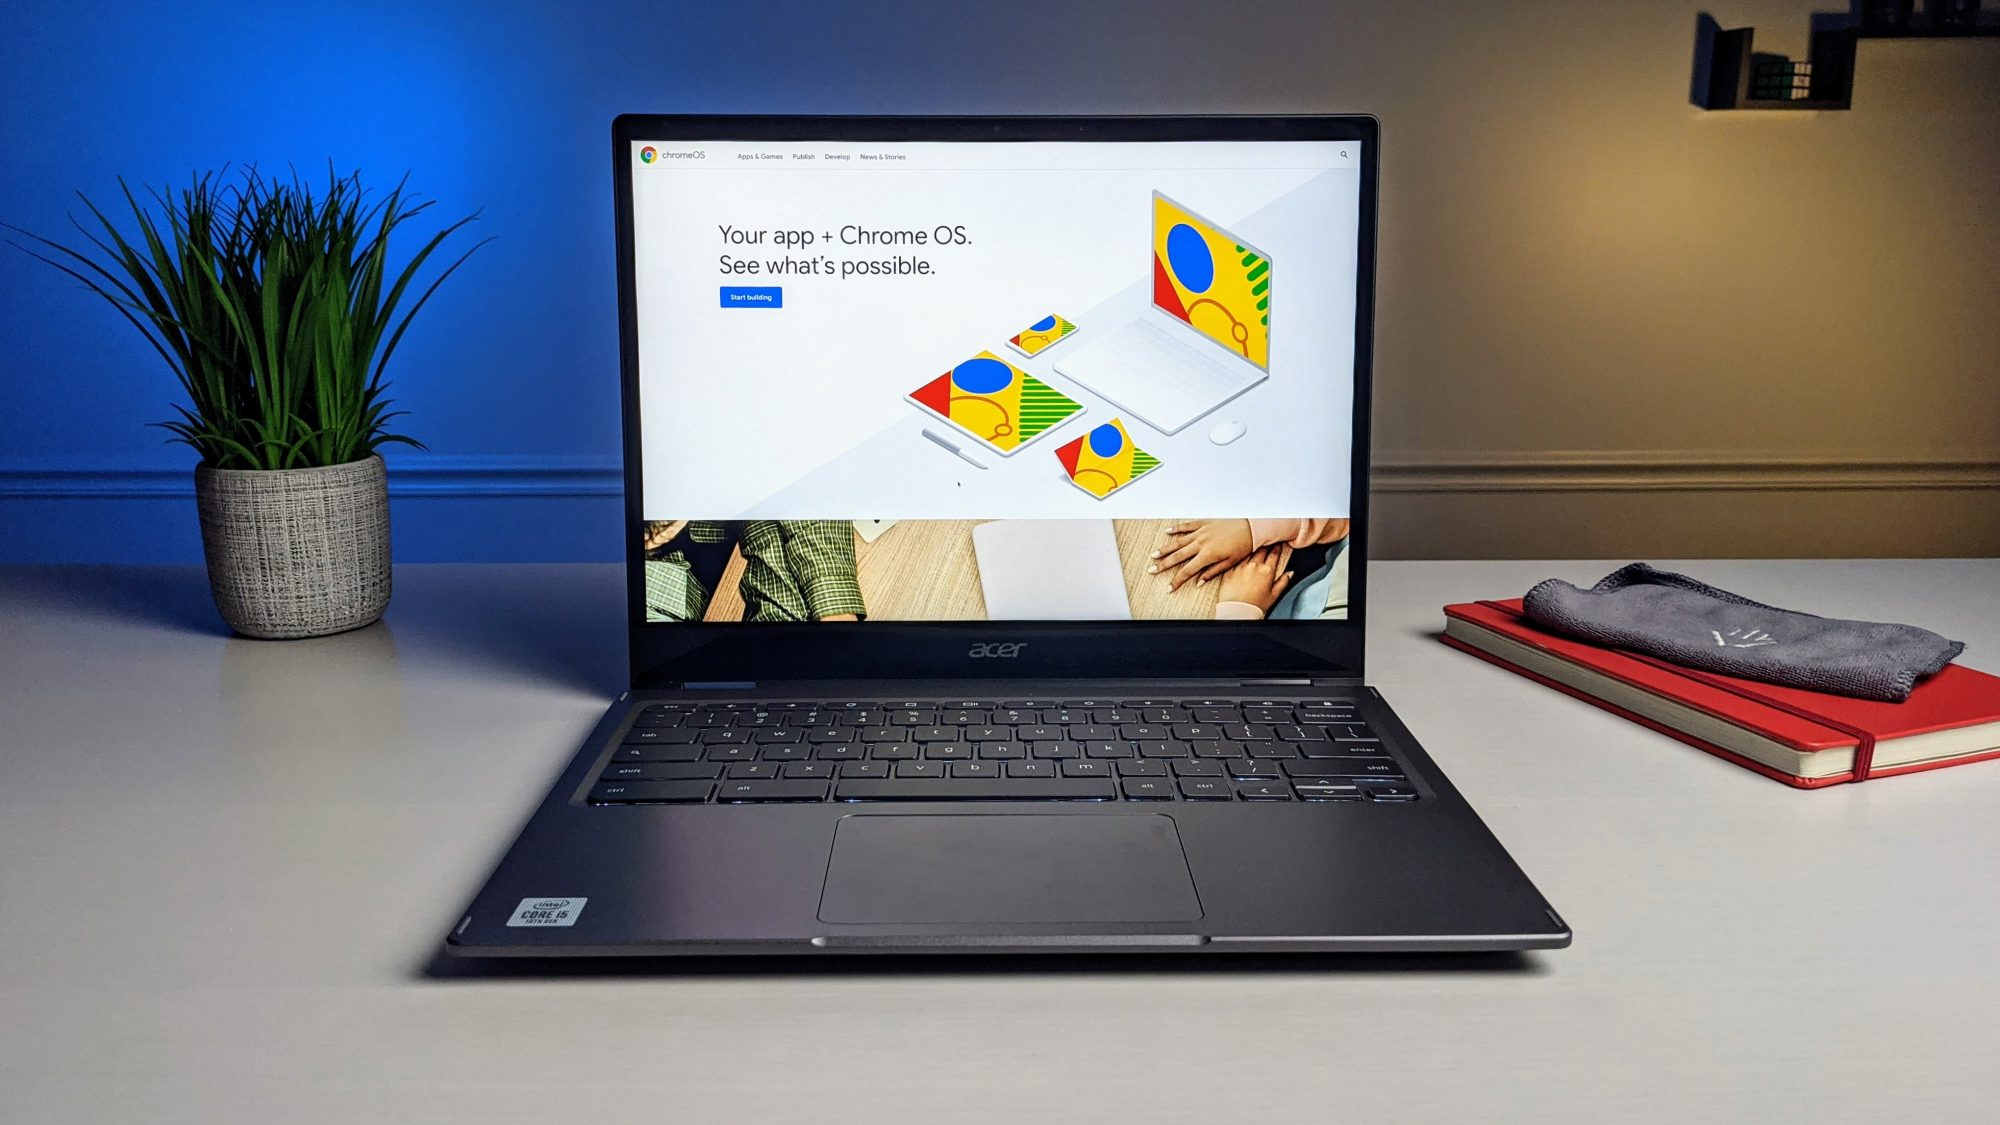 chromeOS.dev is a new hub to help developers make great things for Chromebooks